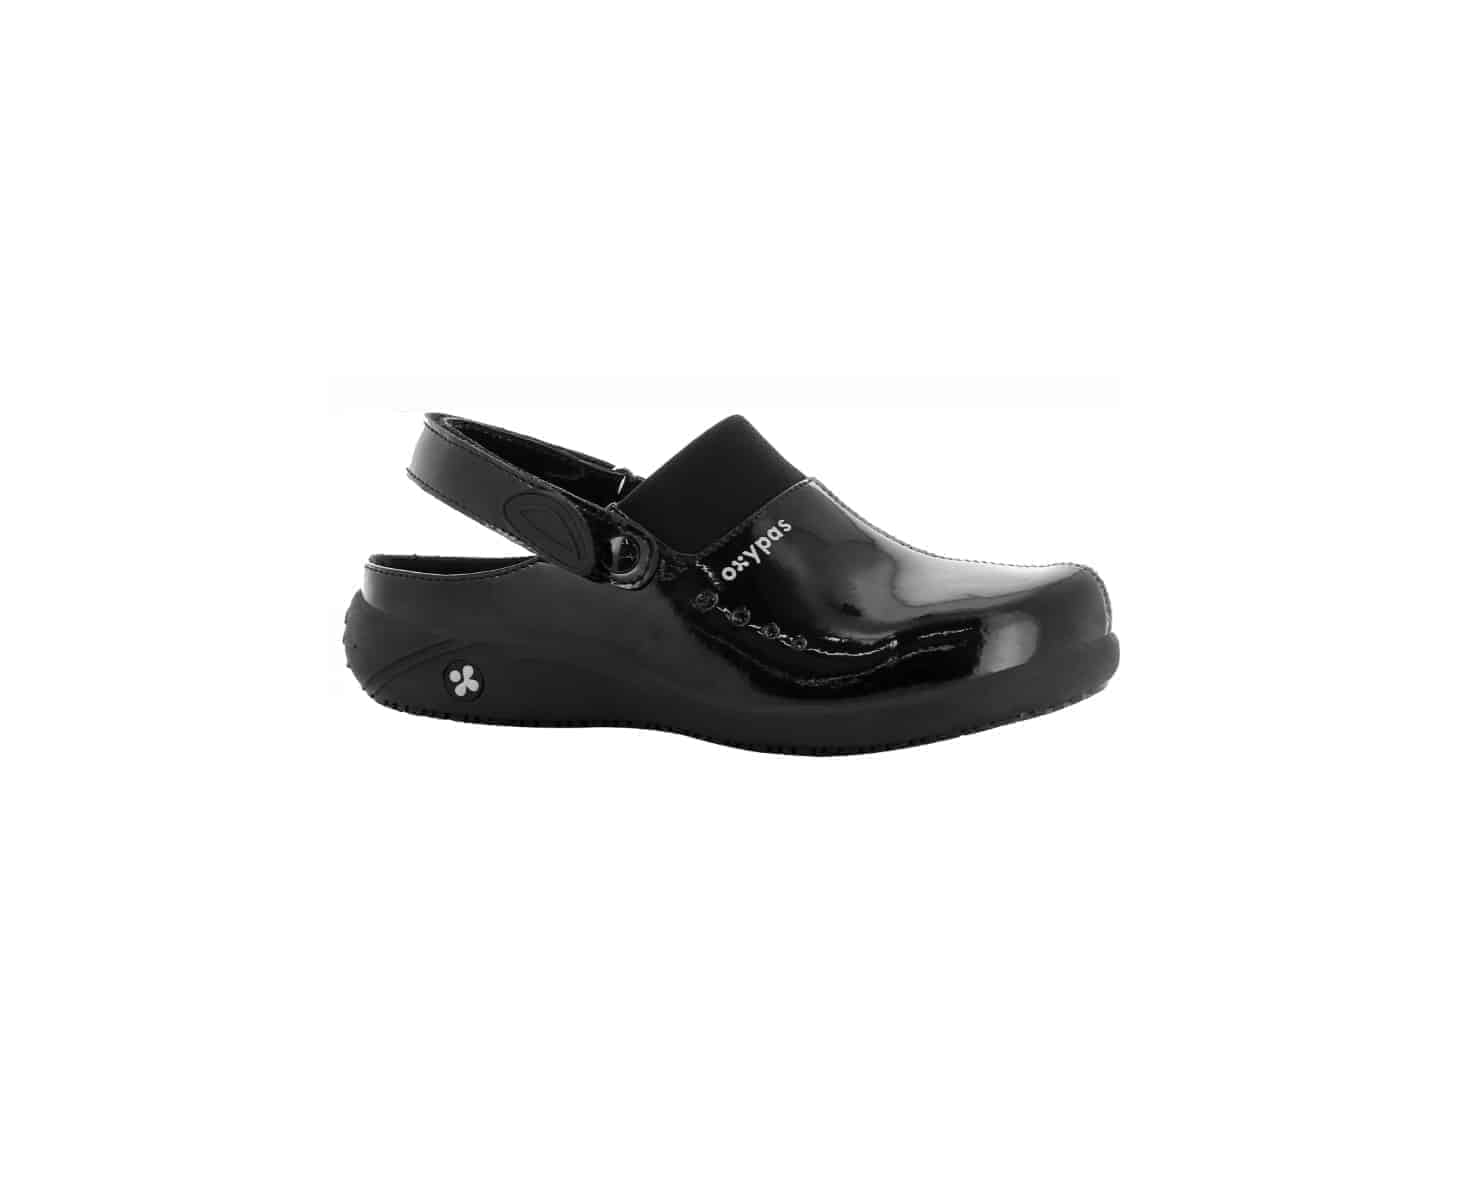 Oxypas Move Doria Leather Nursing Clog